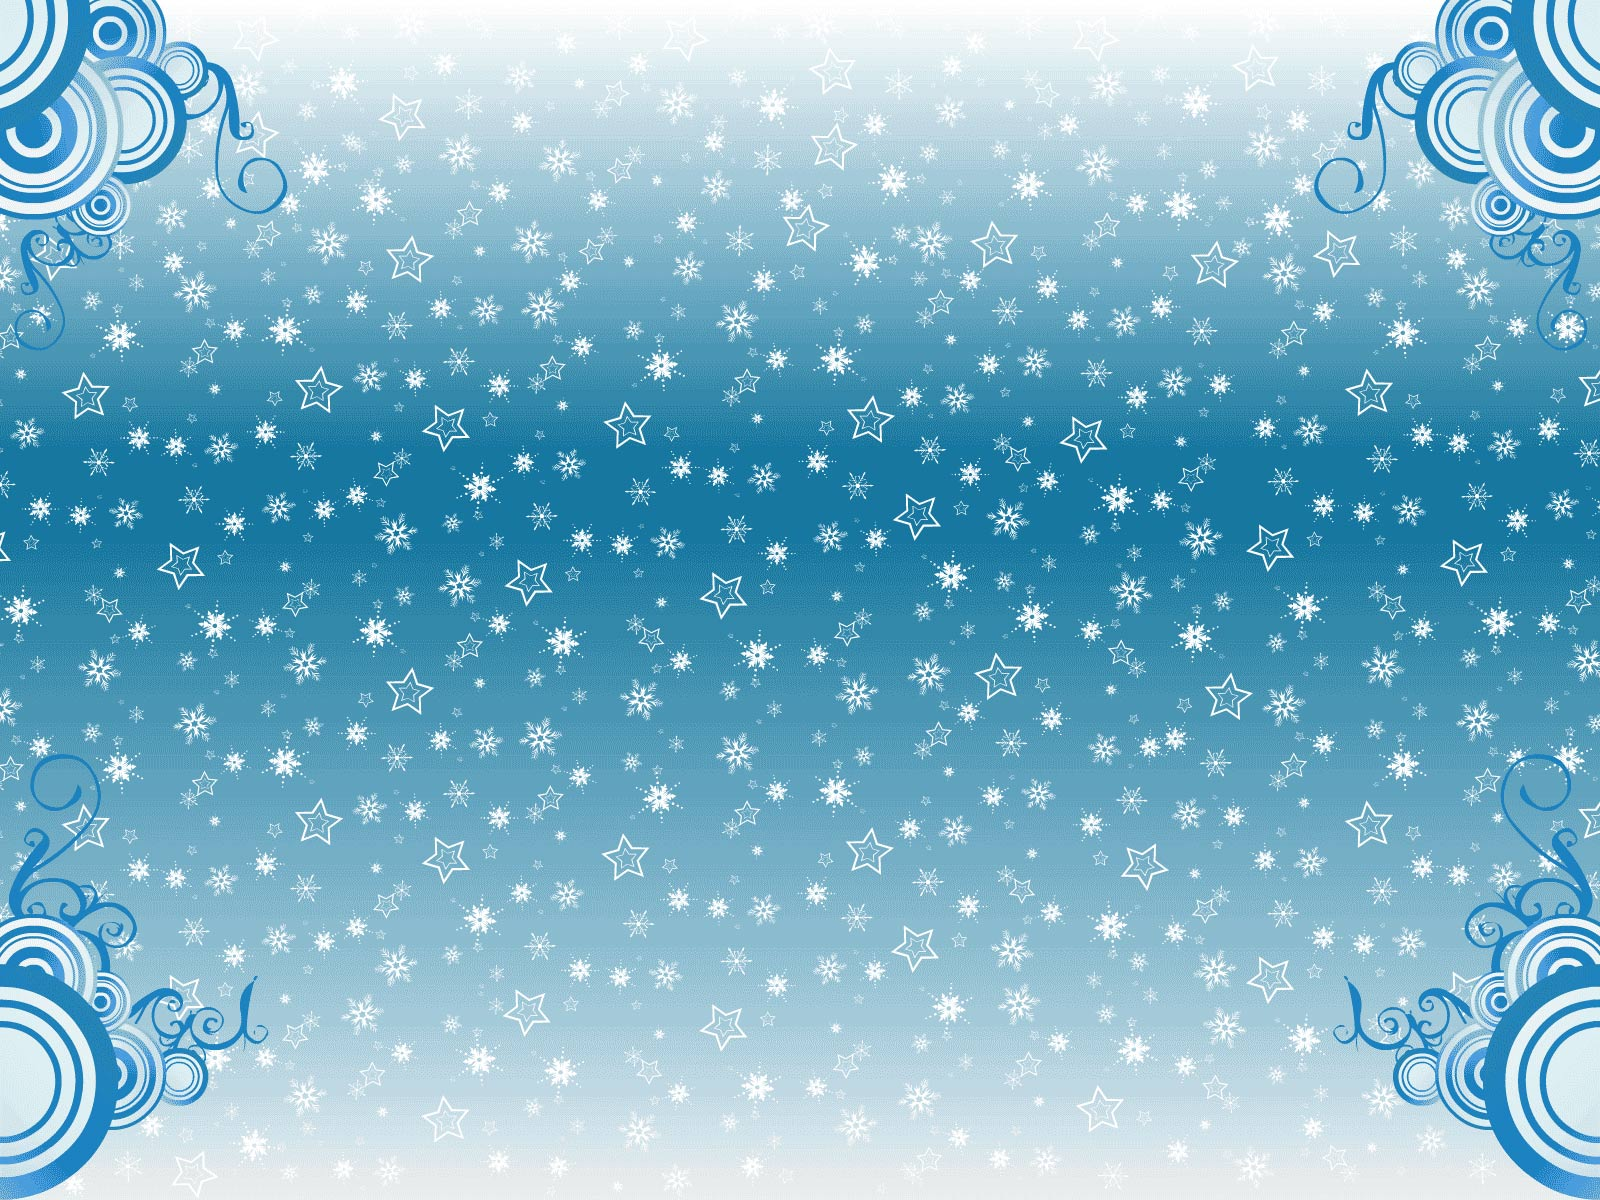 Best Winter WallpapersComputer Wallpaper 1600x1200